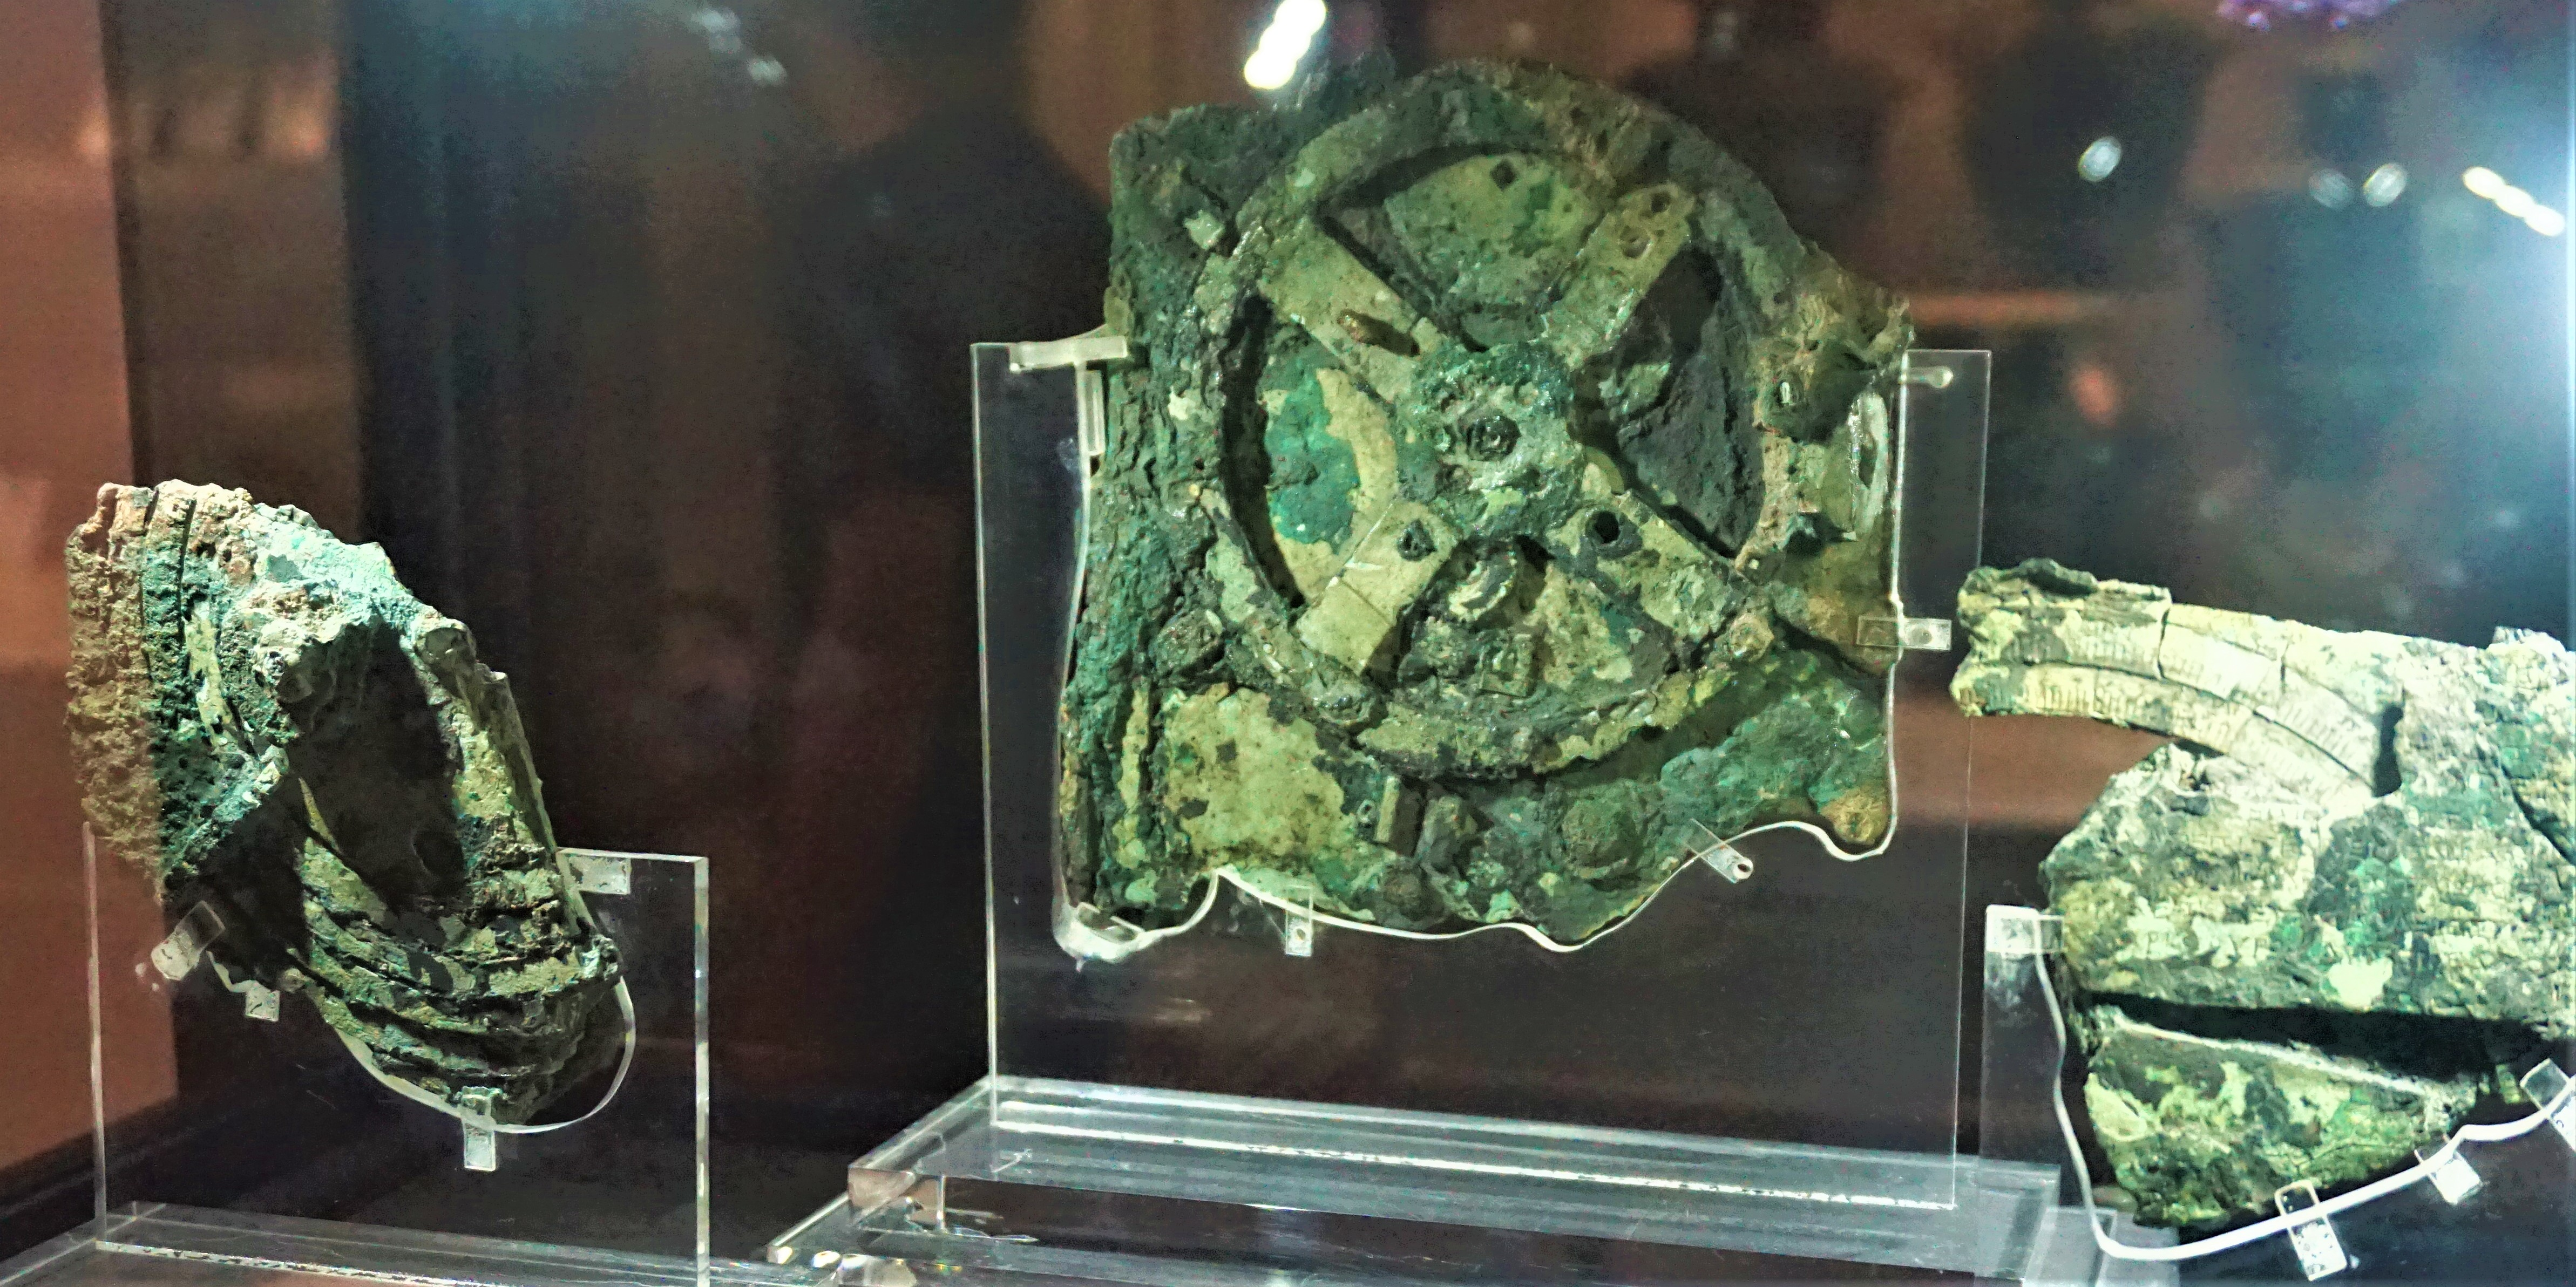 https://itotd.com/files/2019/02/Antikythera_Mechanism_-_National_Archaeological_Museum_Athens_by_Joy_of_Museum.jpg